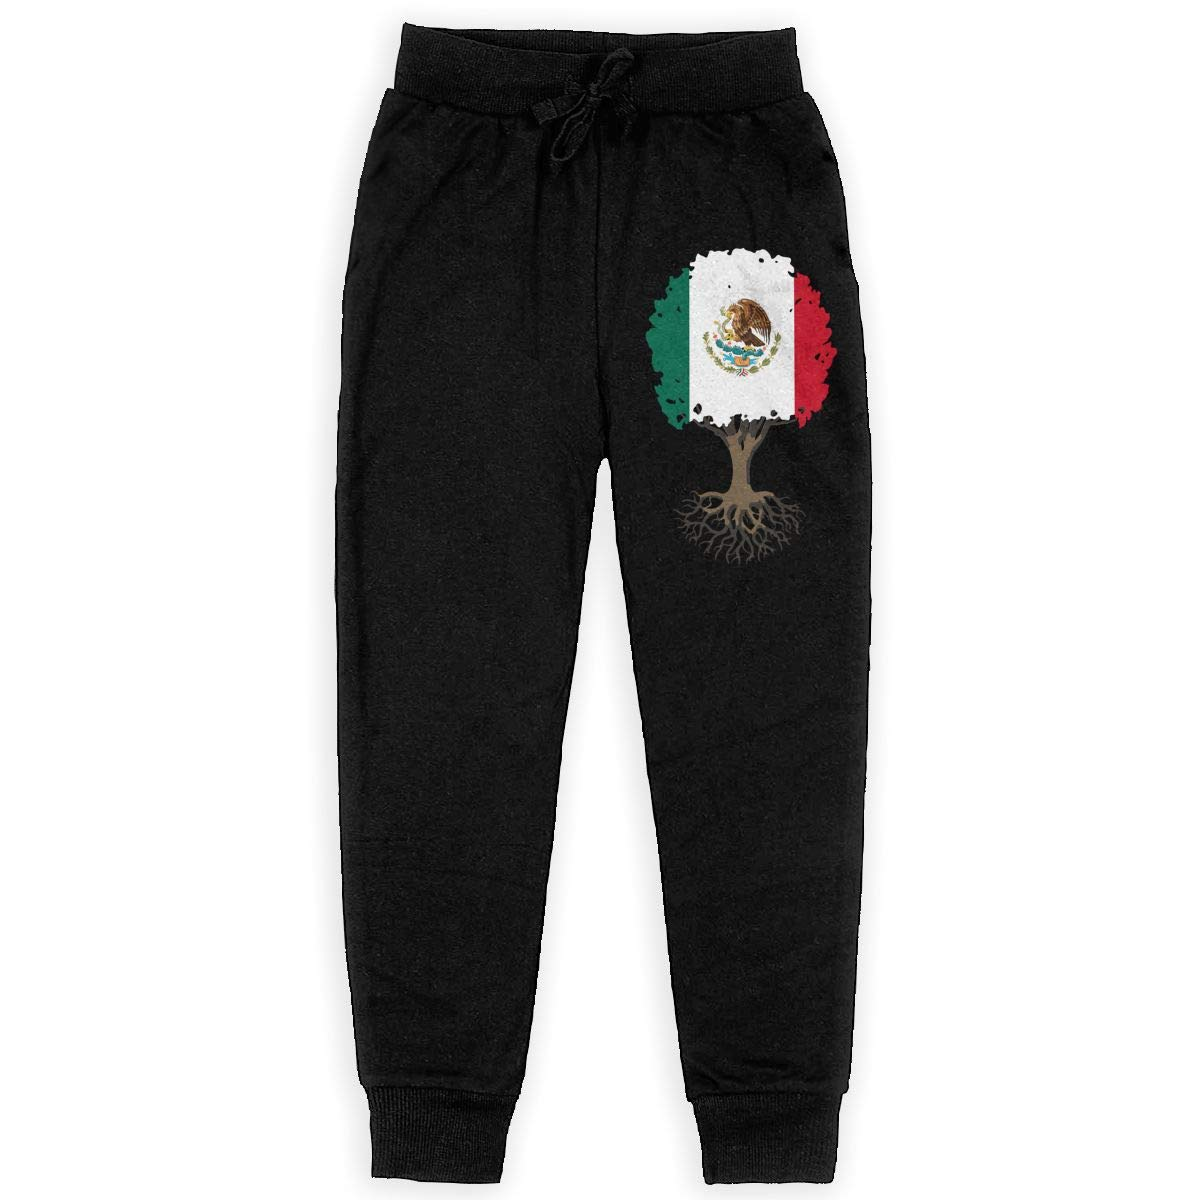 WYZVK22 Tree of Life with Mexico Flag Soft//Cozy Sweatpants Teenager Active Pants for Teen Girls